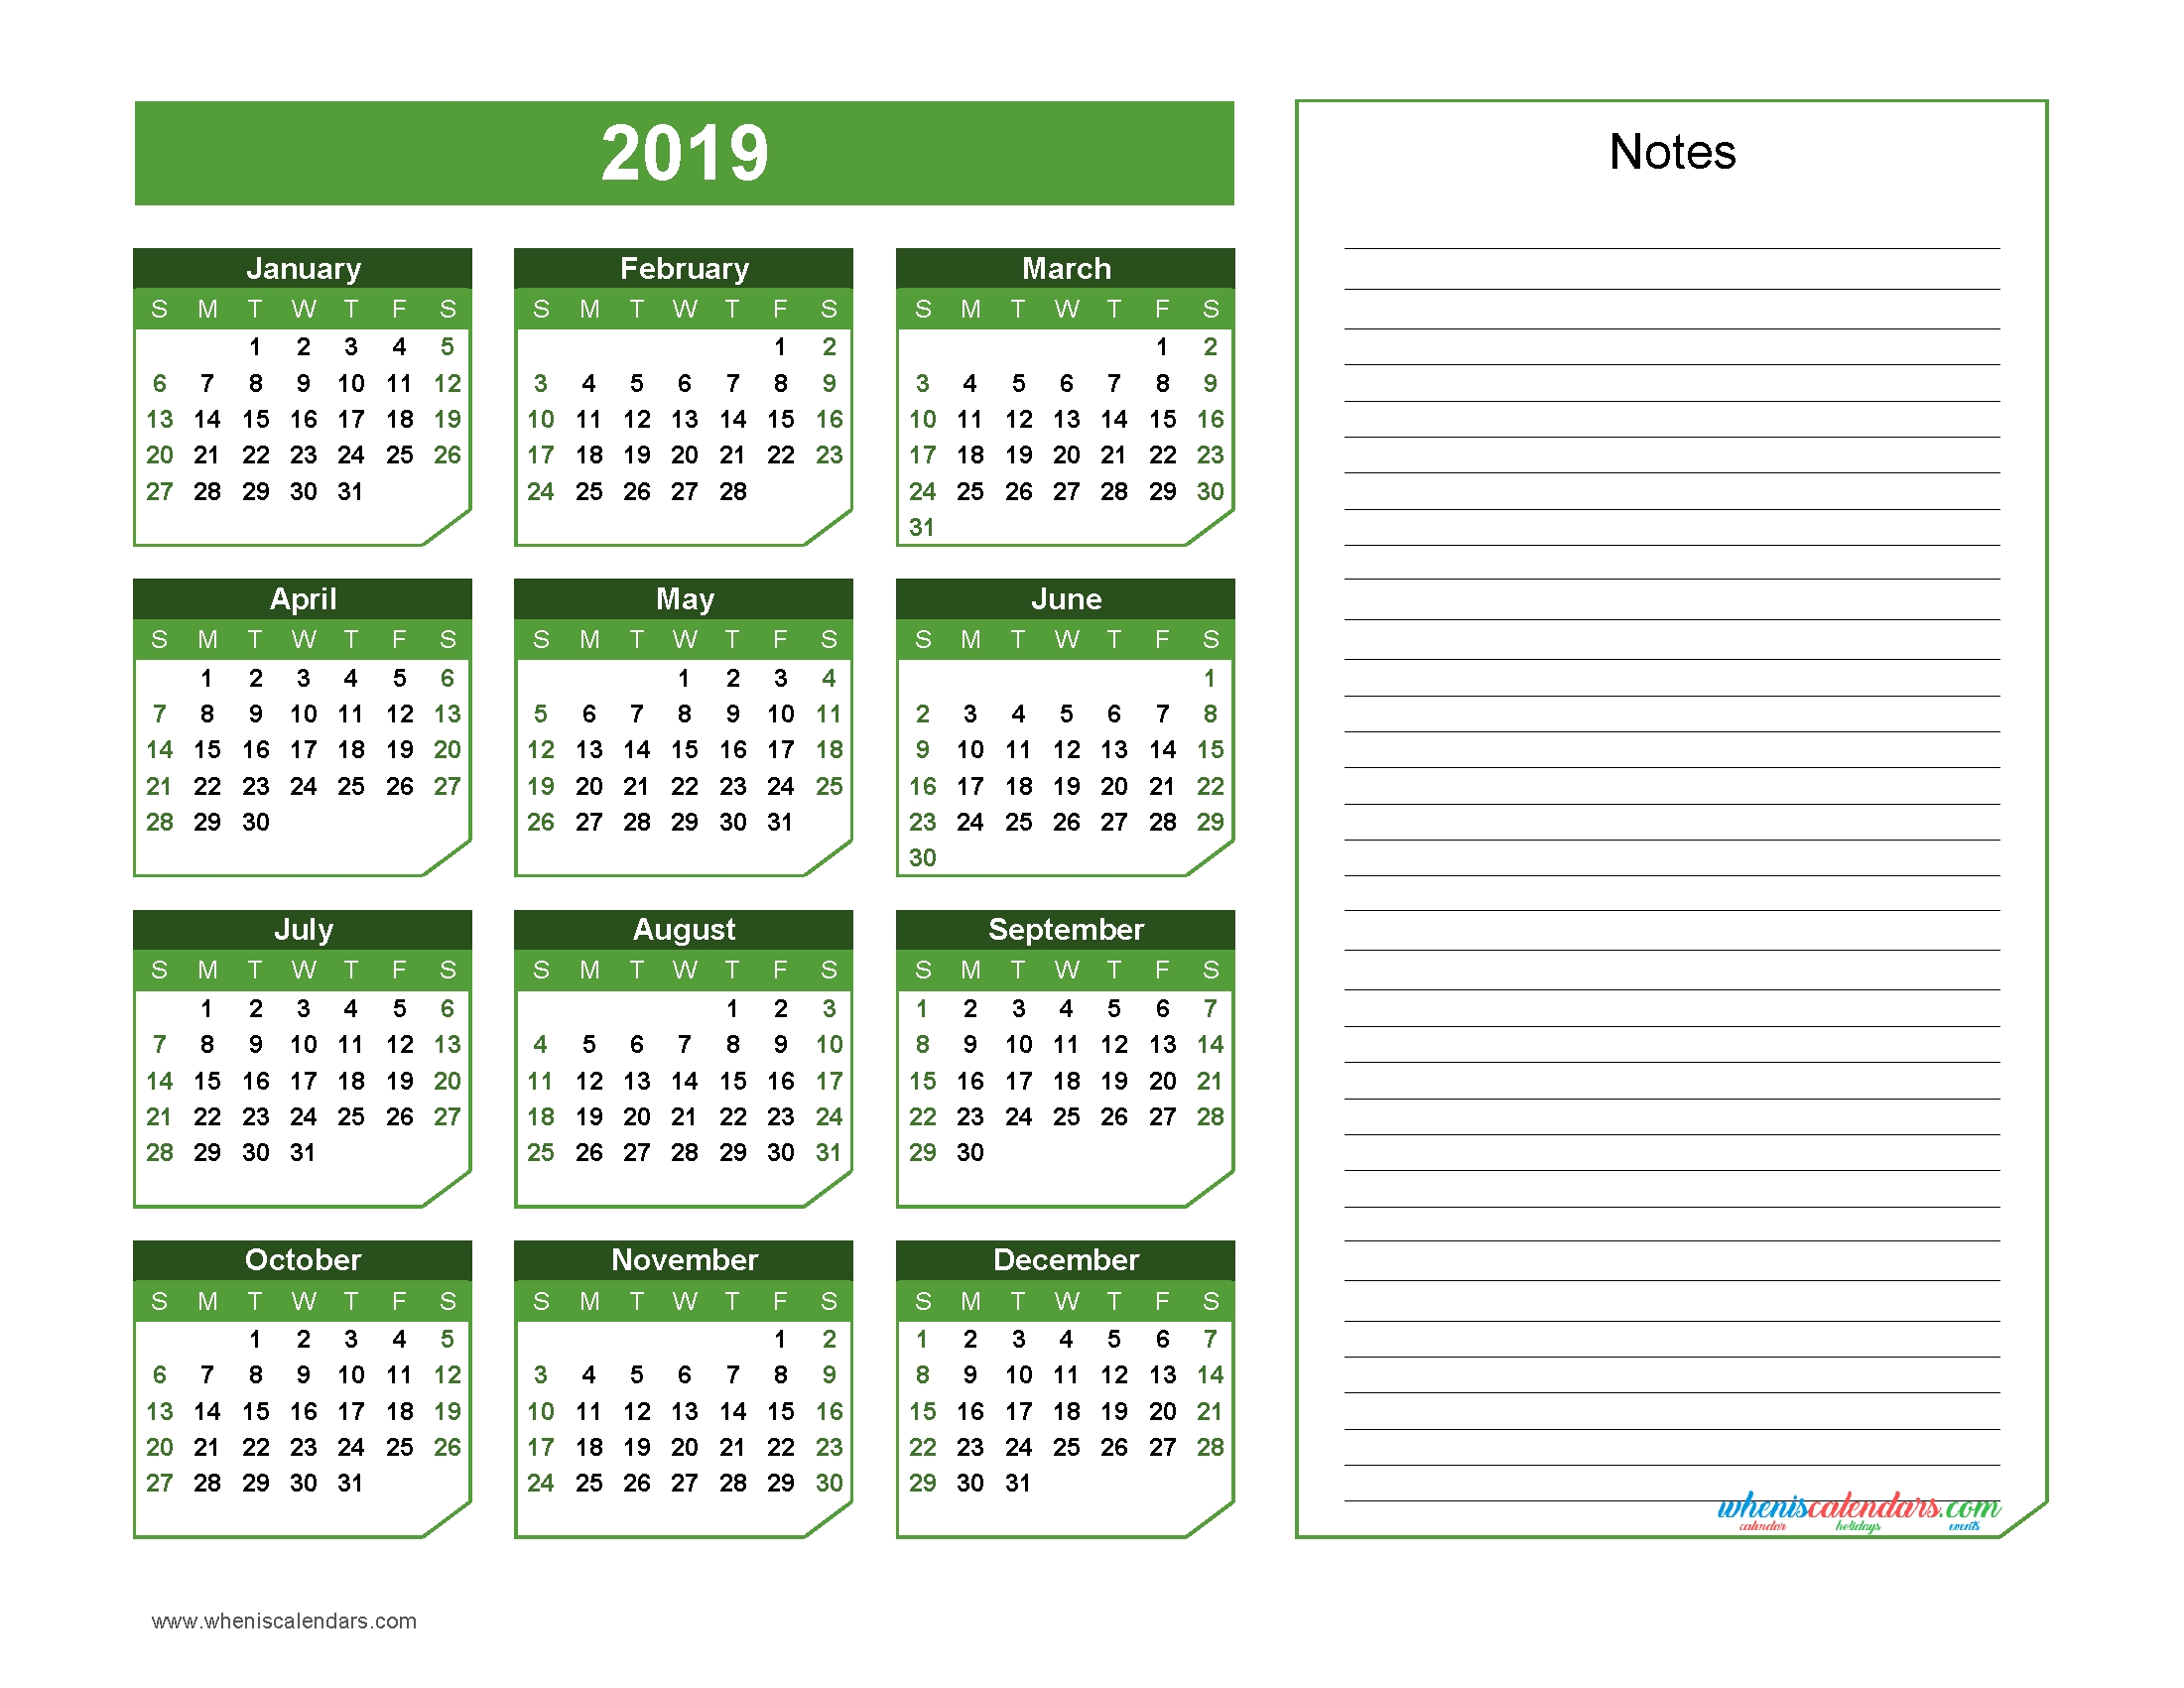 2019 Yearly Calendar With Notes Printable Chamfer Collection Green